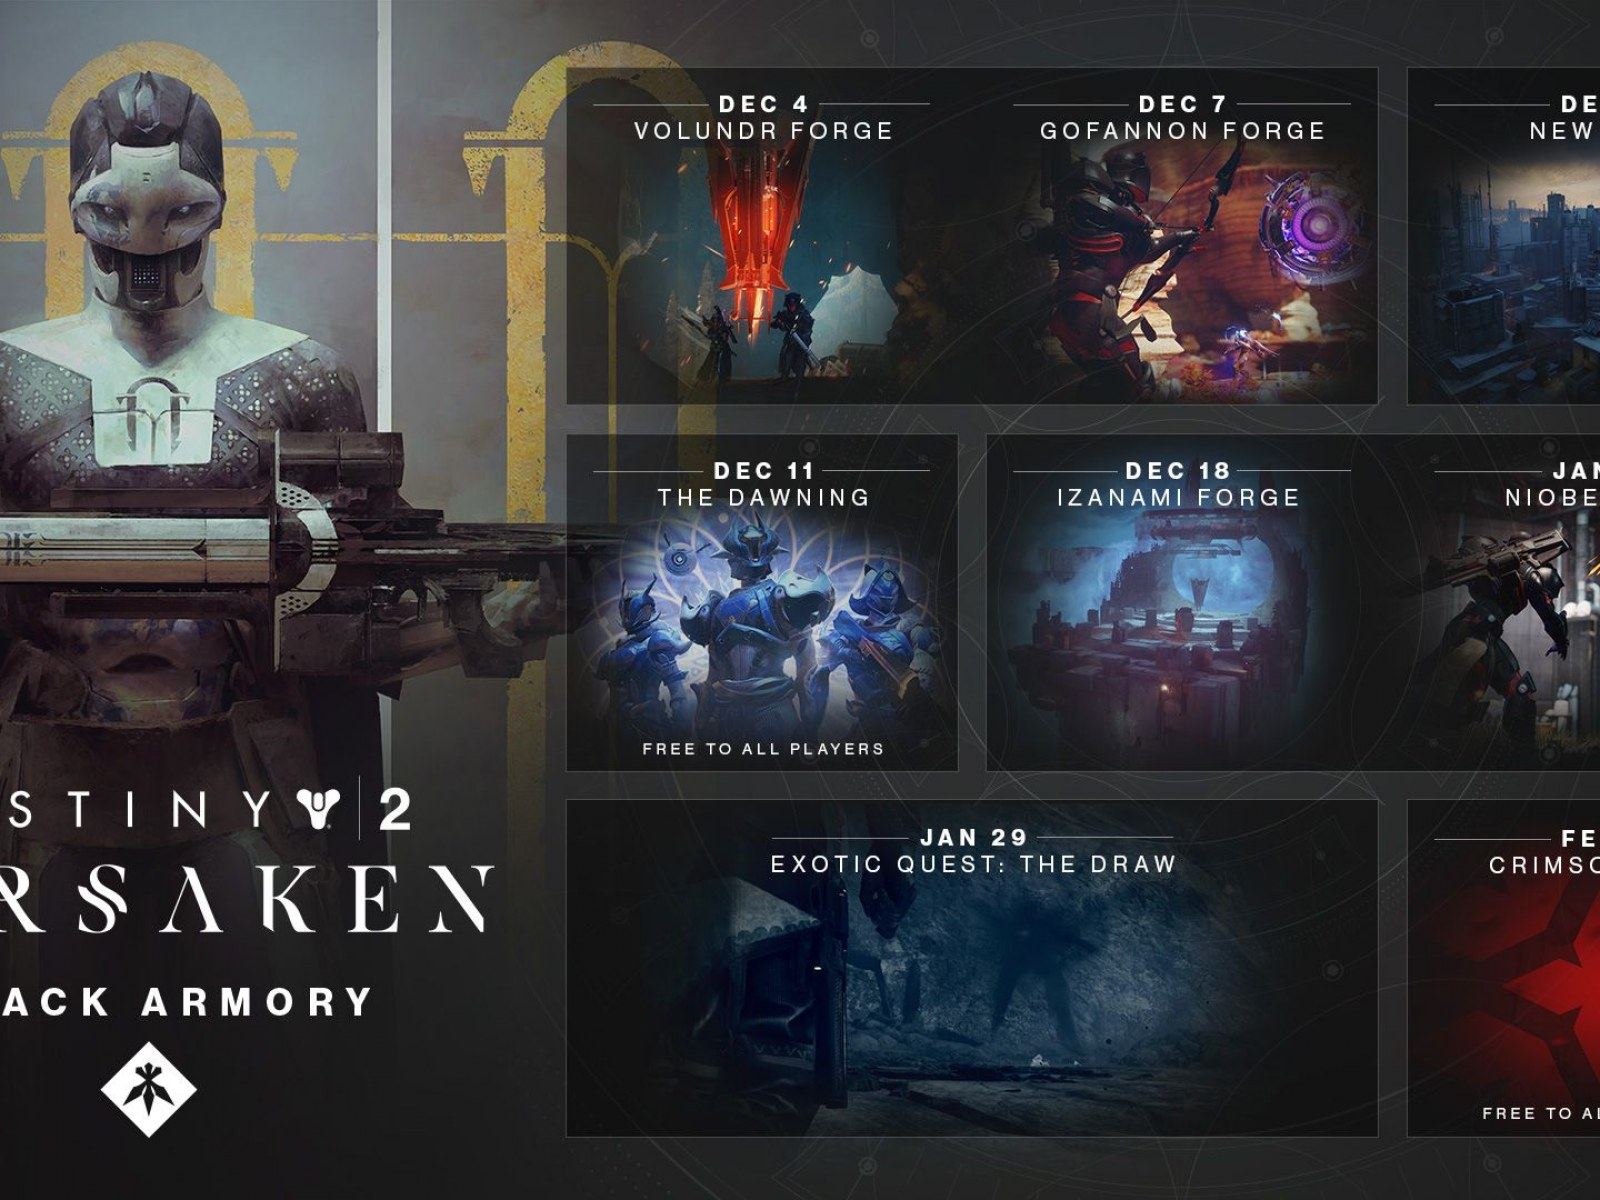 Destiny 2' Update 2 1 0 (1 29) Adds Season of Forge Before Black